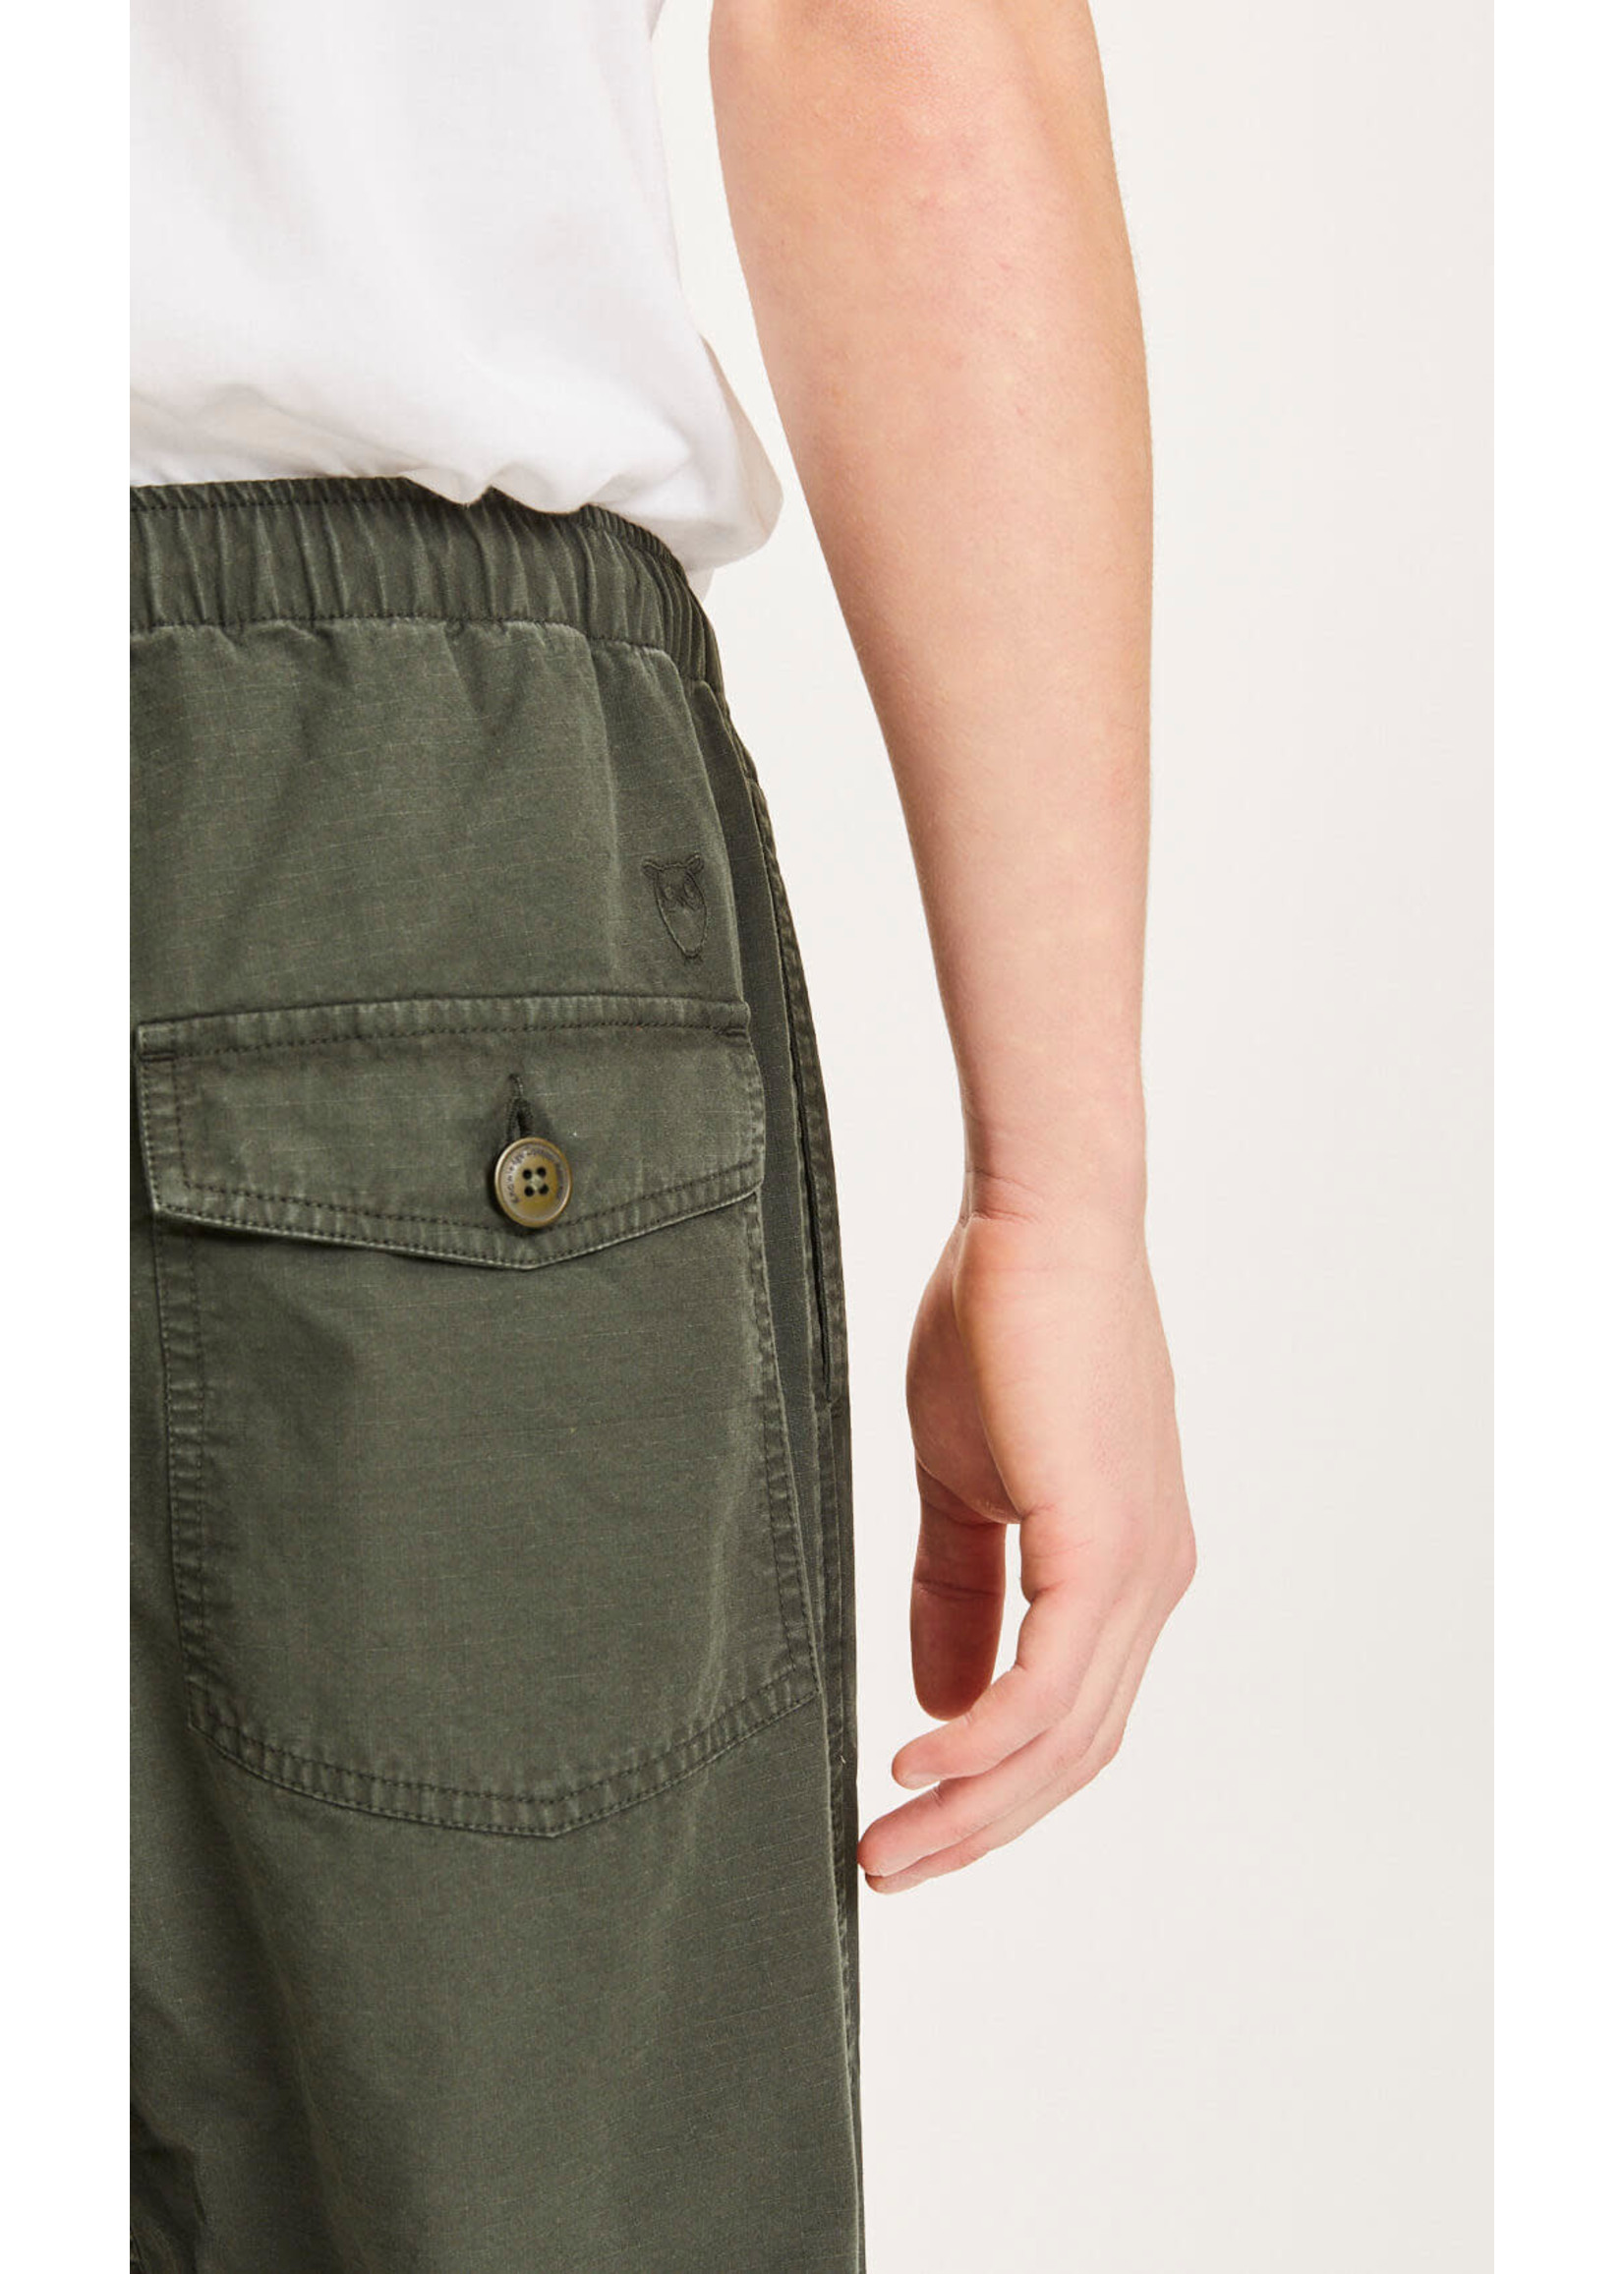 KnowledgeCotton KnowledgeCotton FIG loose rib-stop pant